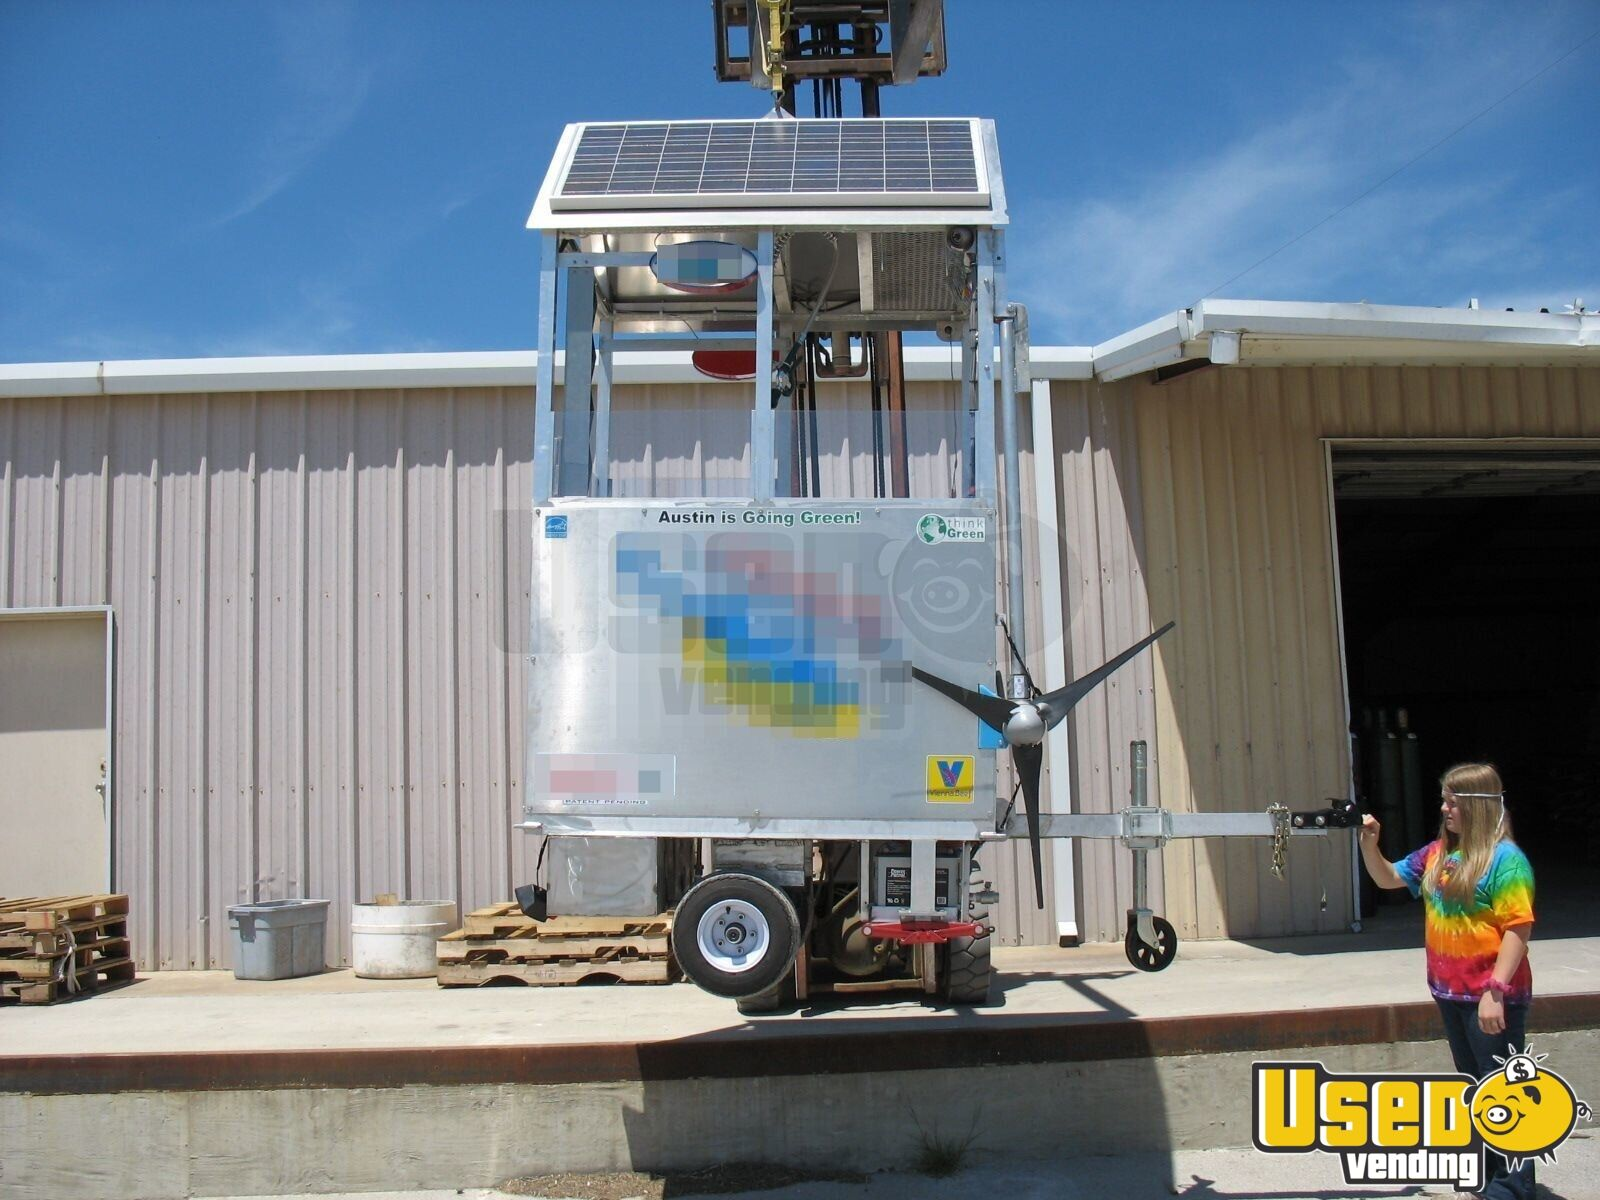 Solar Wind Powered Self Sufficient Food Carts For Sale In Texas